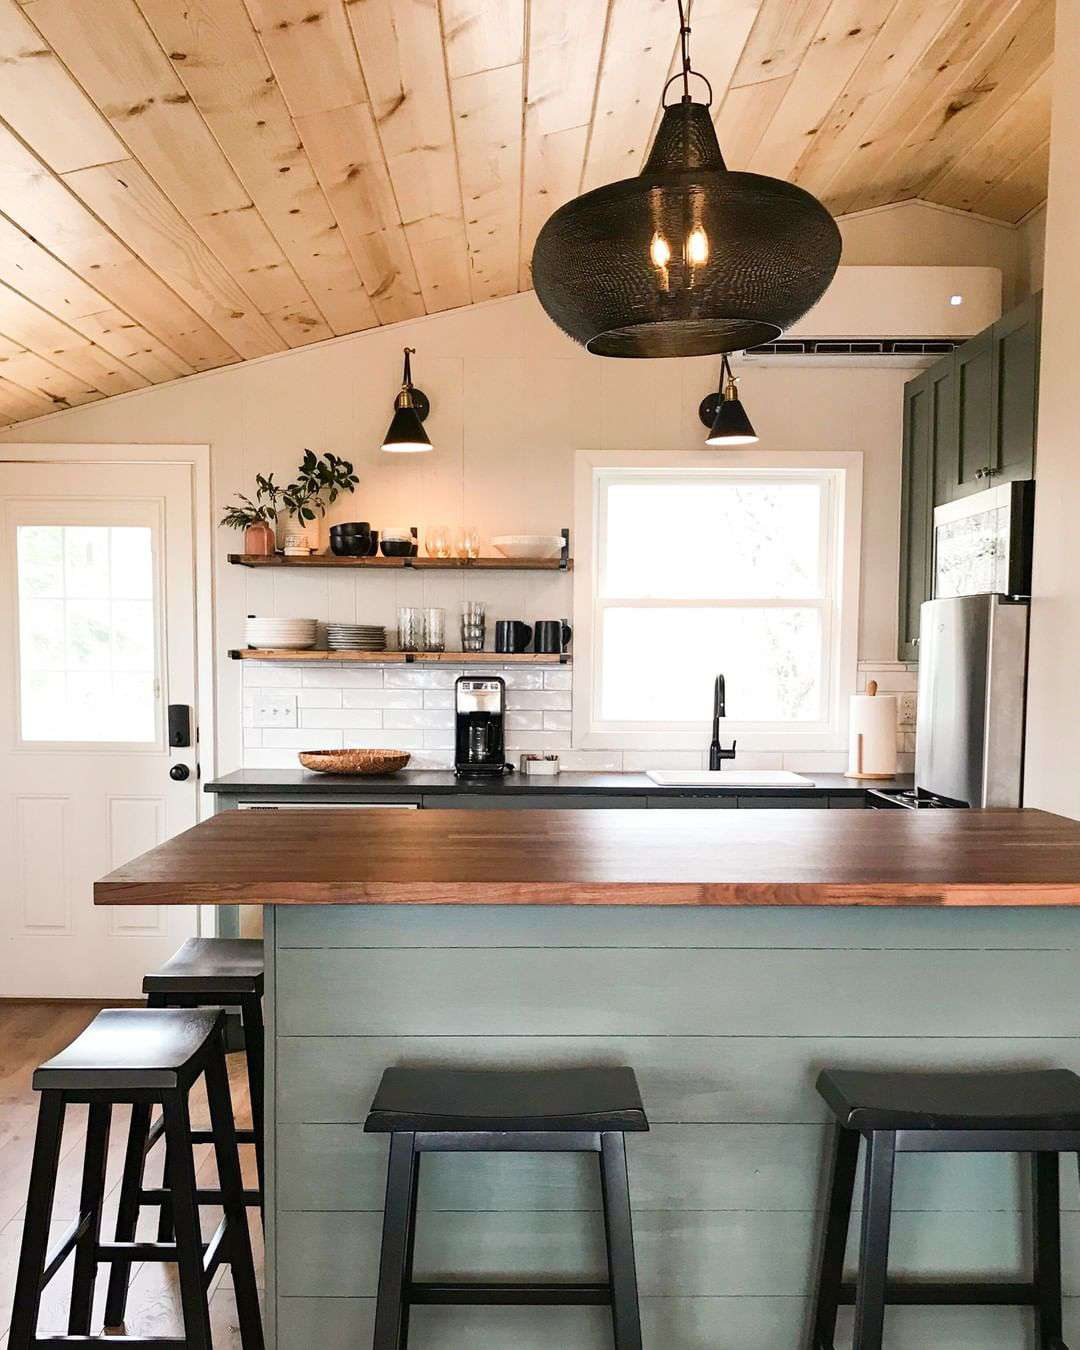 Kitchen with wood paneling on the ceiling